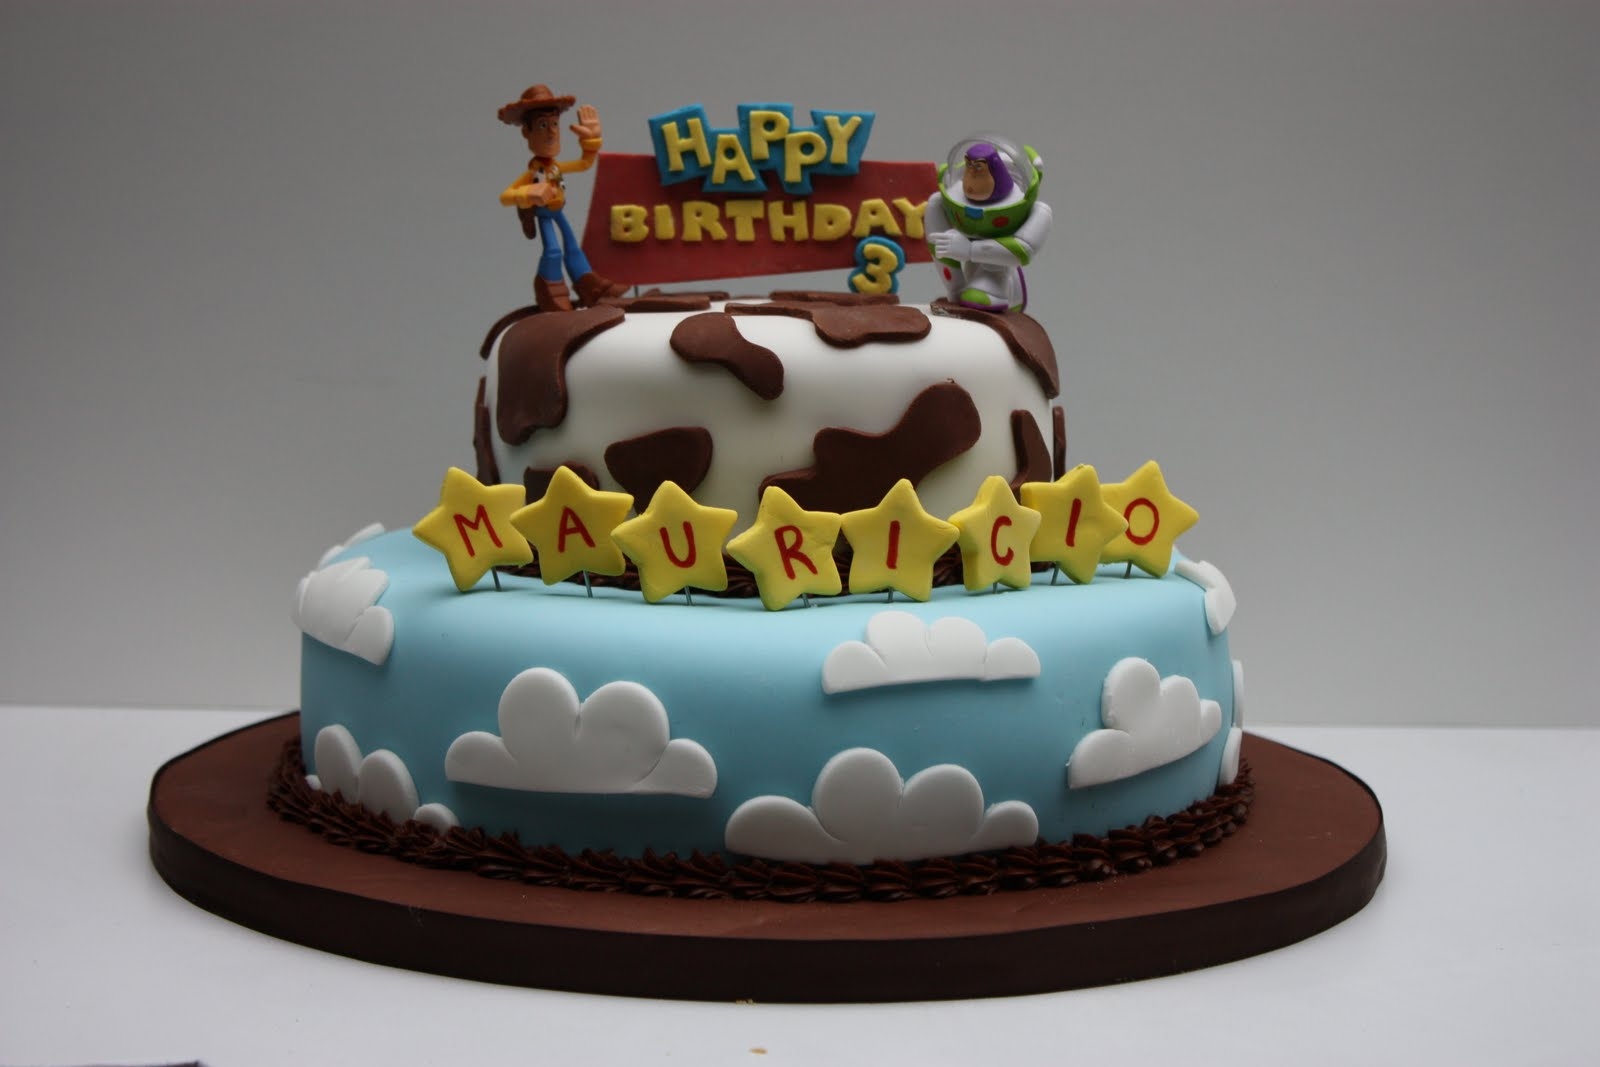 Birthday Cake Toy : Whimsical by design toy story birthday cake